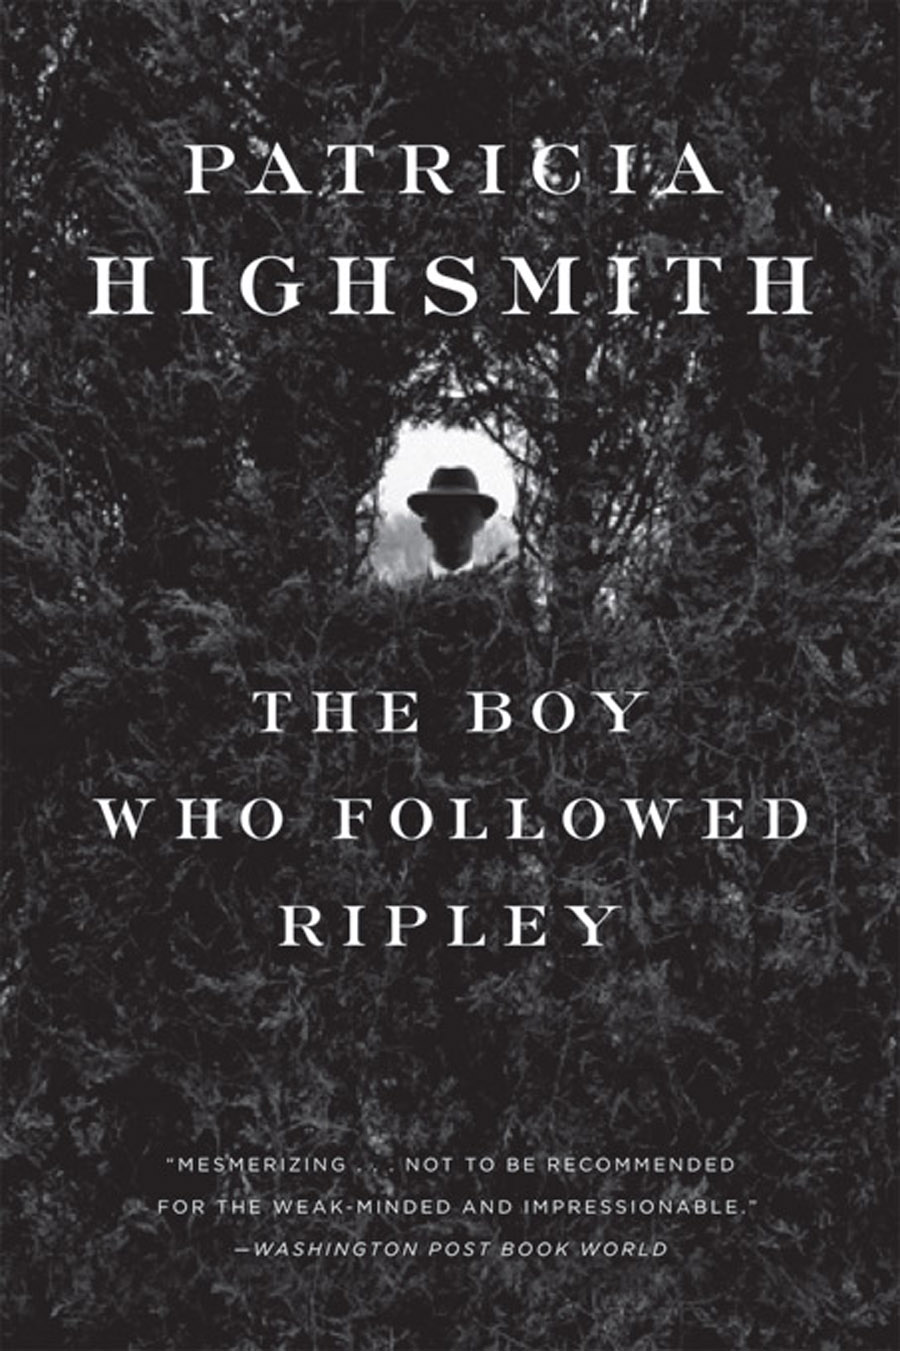 The Boy Who Followed Ripley By: Patricia Highsmith